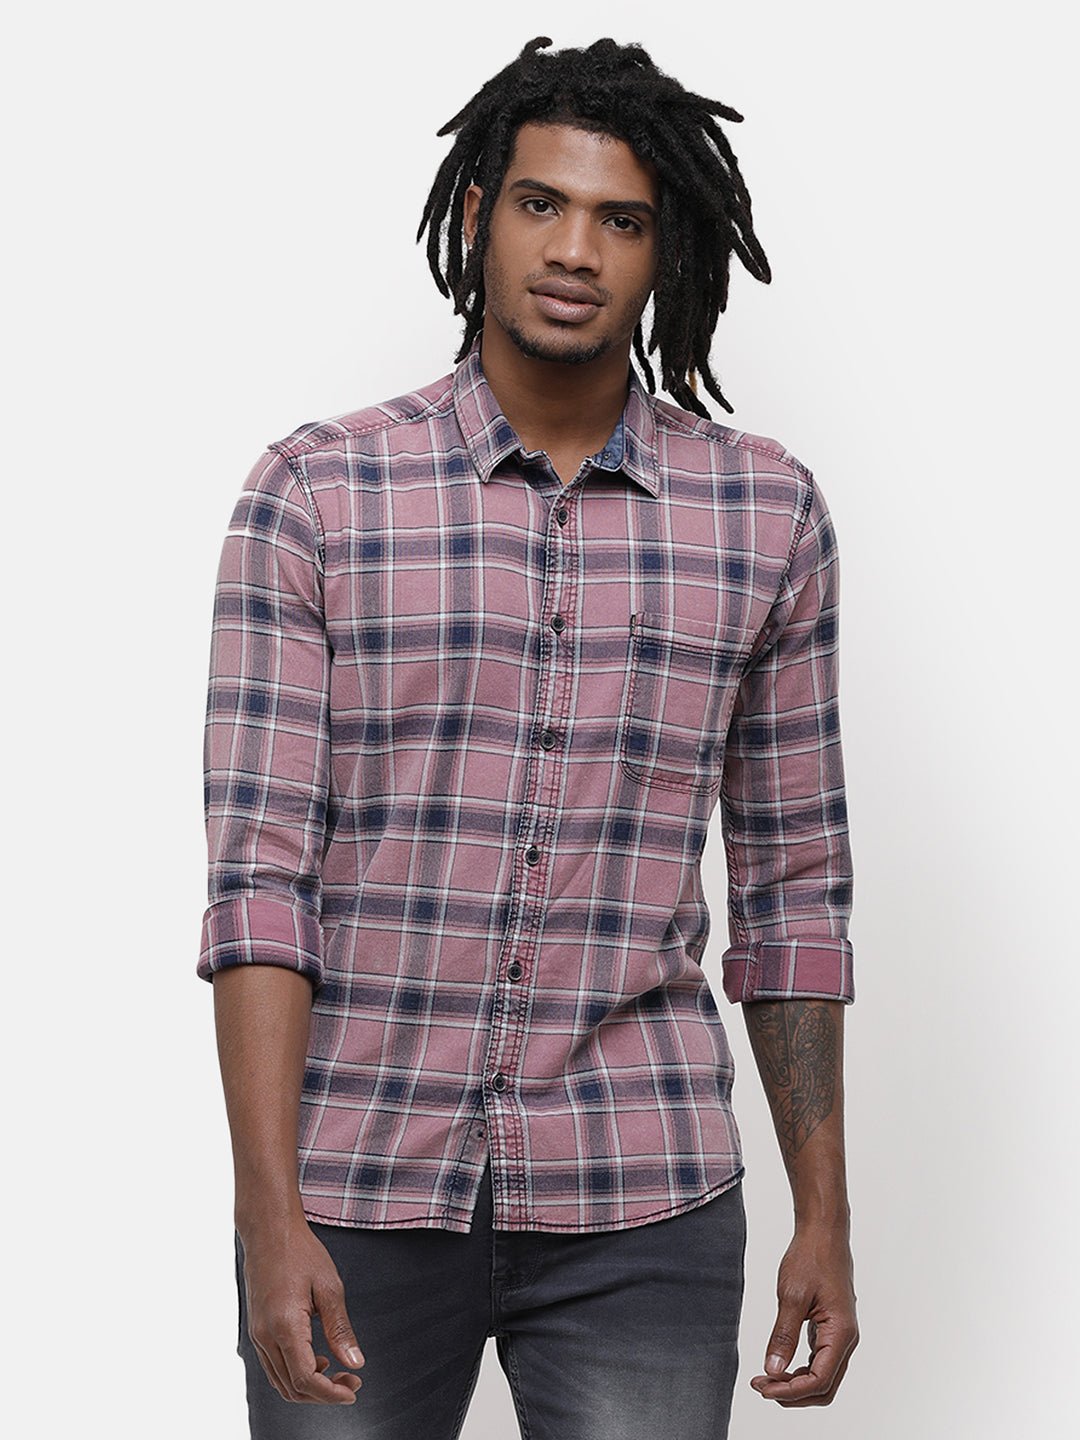 Men's Pink and navy checks casual shirt